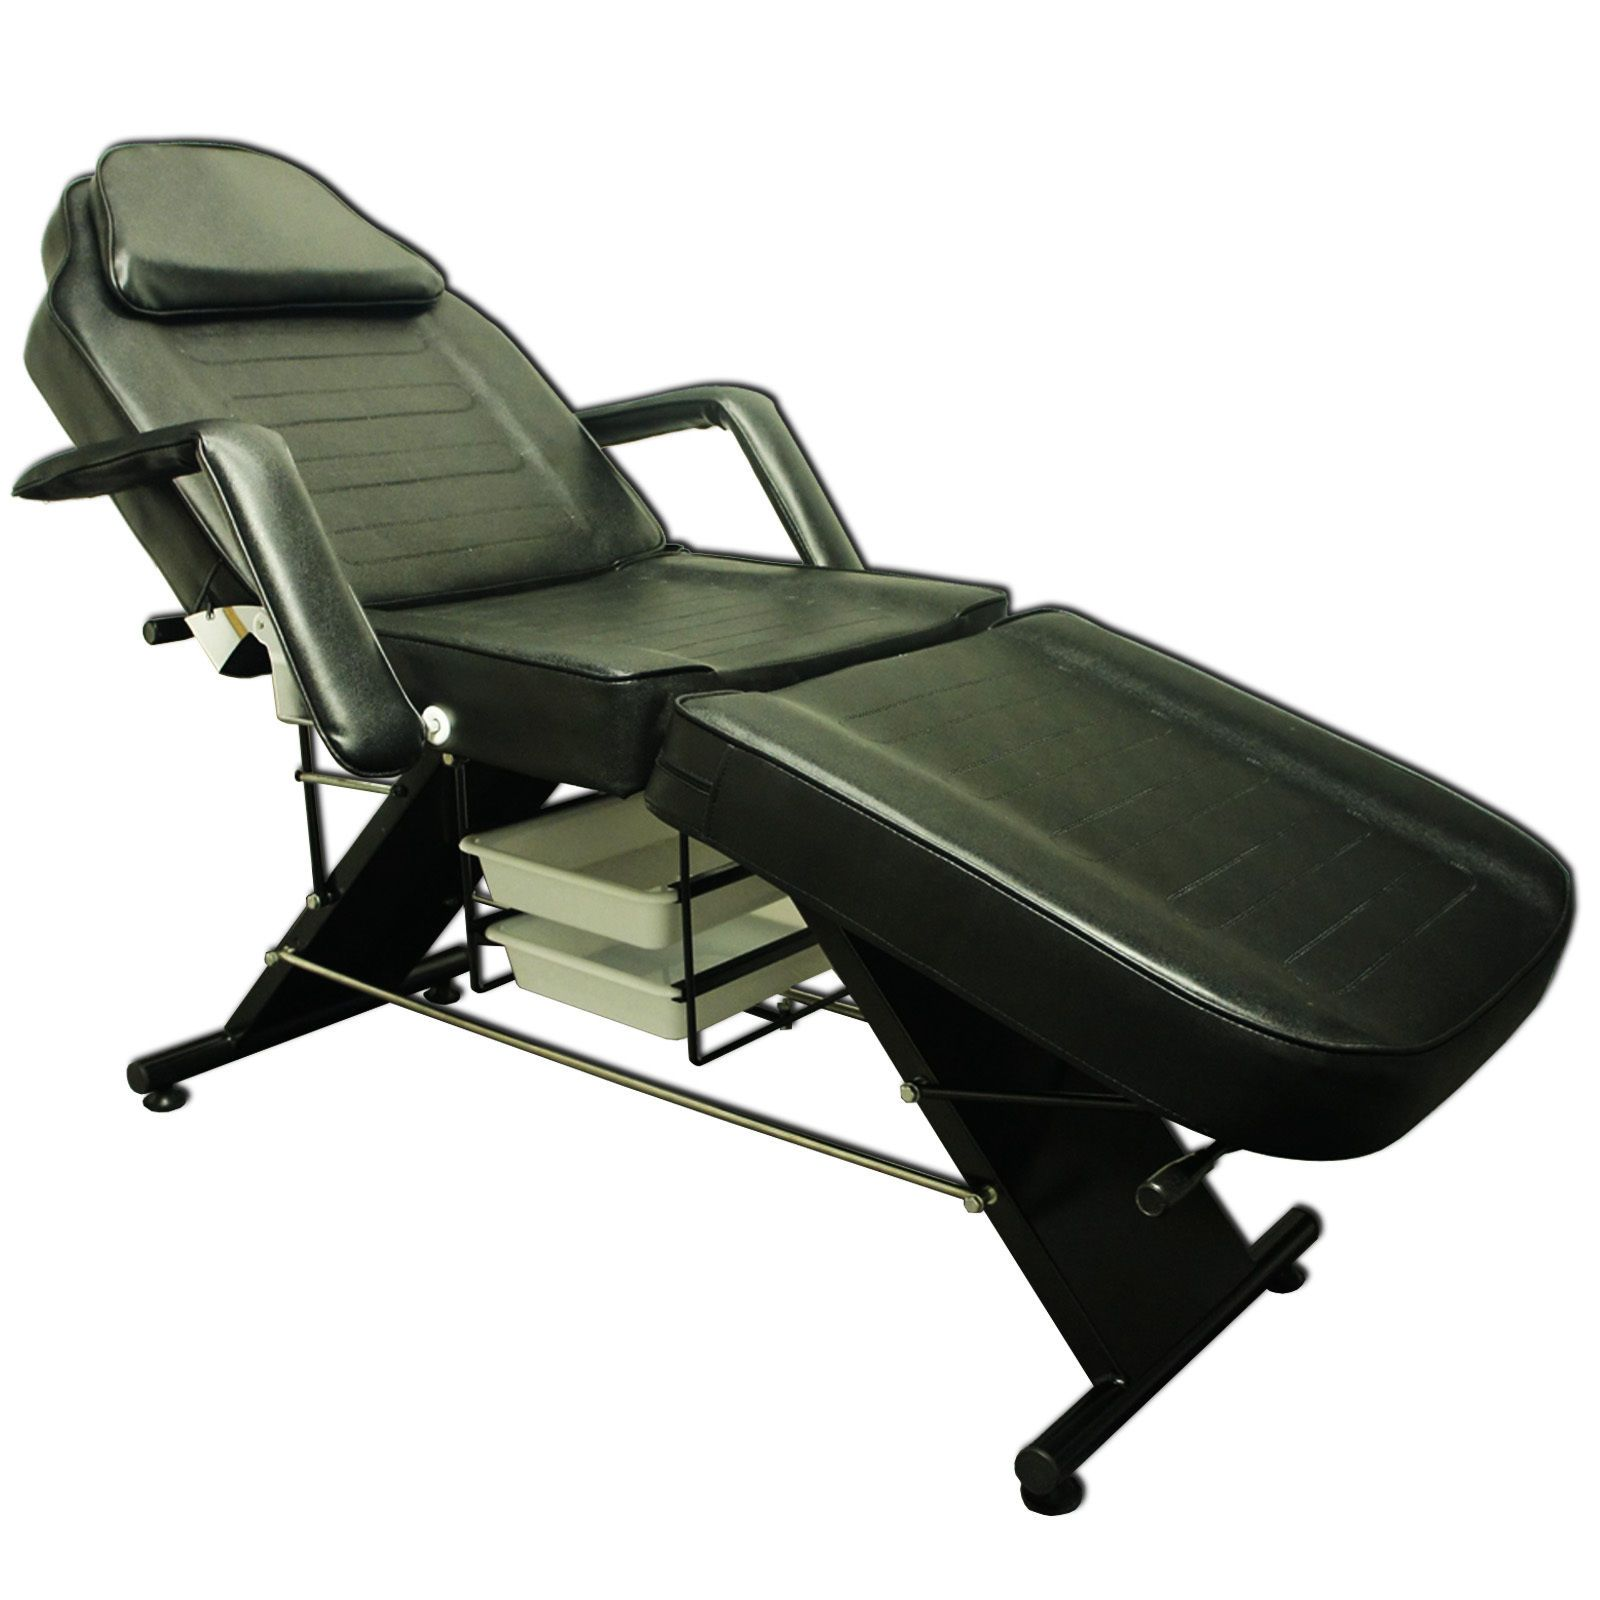 Salon SPA Black Dental Reiki Massage Bed Tattoo Chair